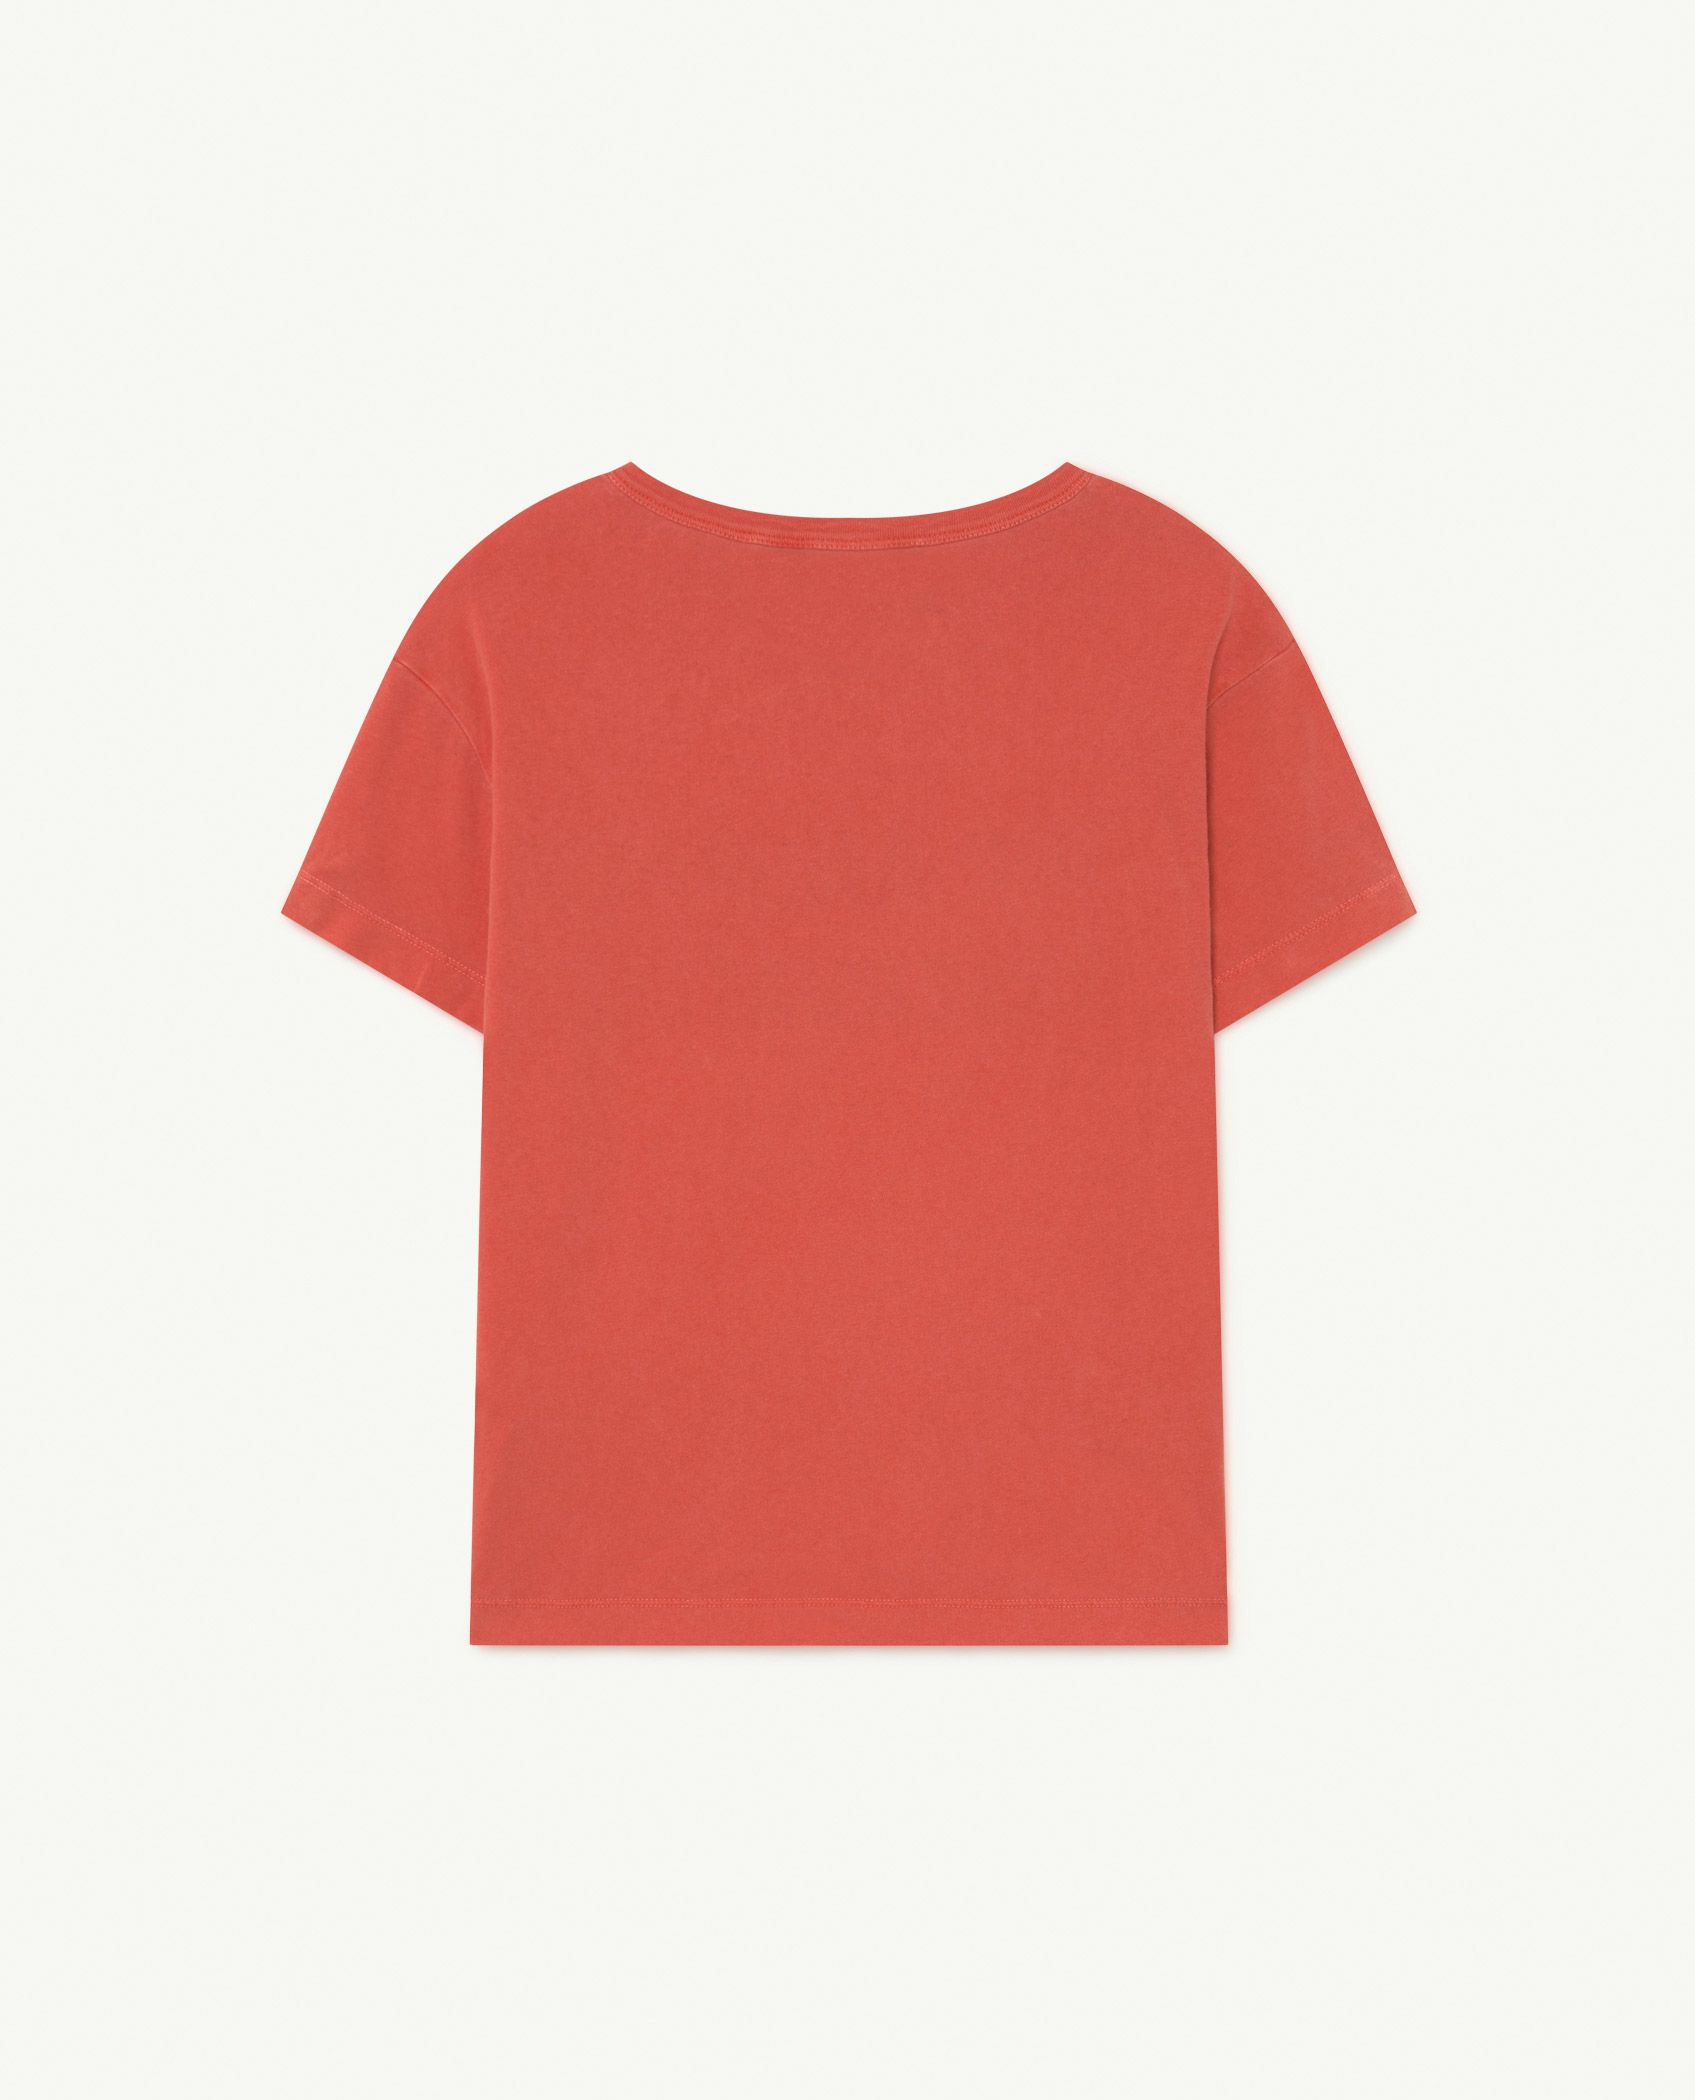 Soft Red Rooster T-Shirt img-2